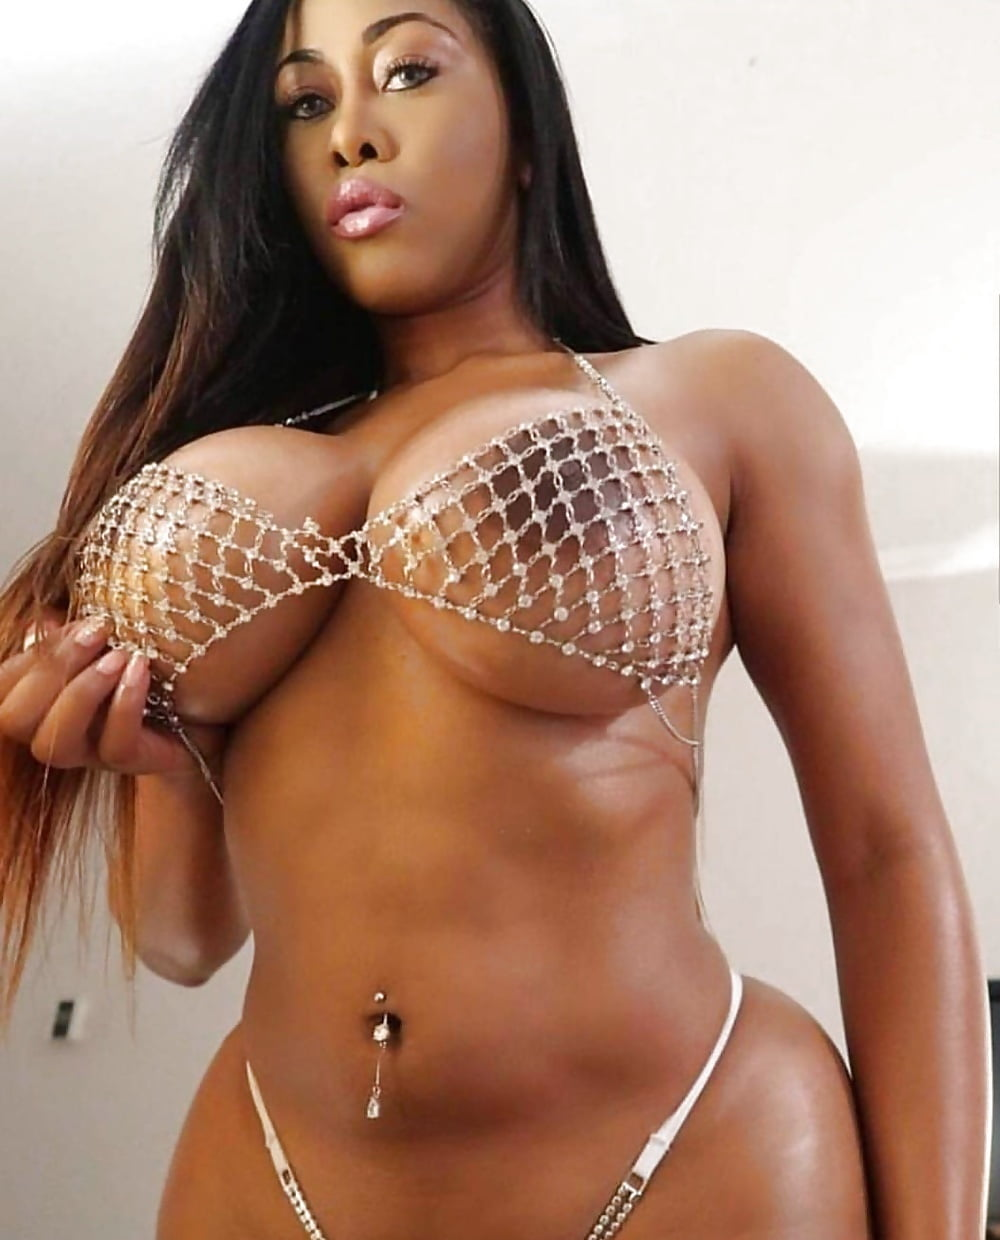 Big black boobs, huge ebony tits, busty black girls